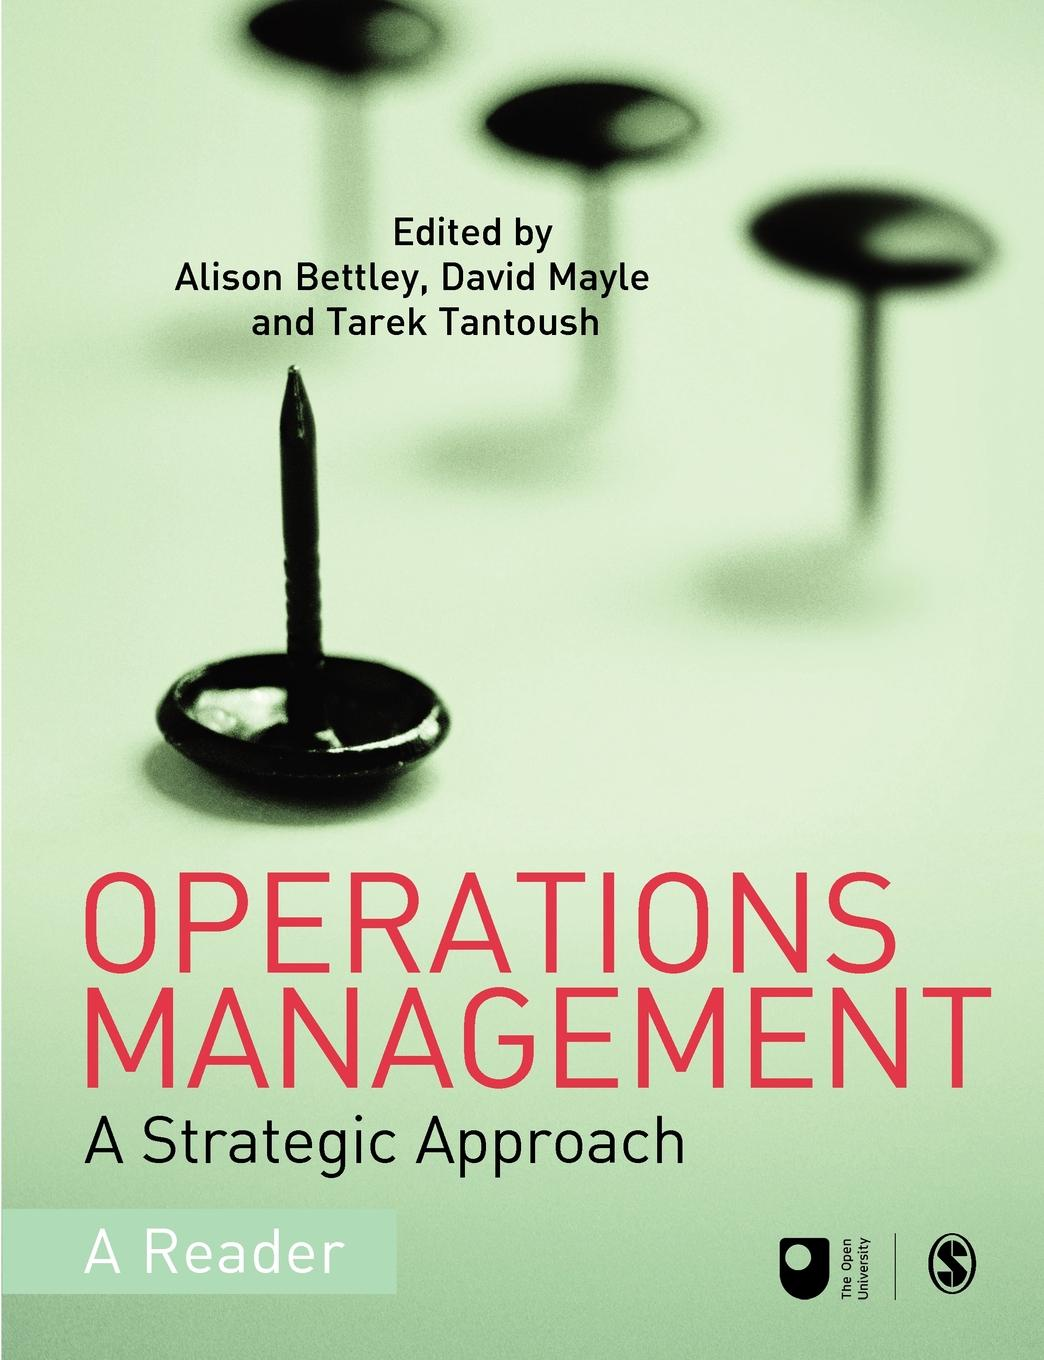 Operations Management. A Strategic Approach